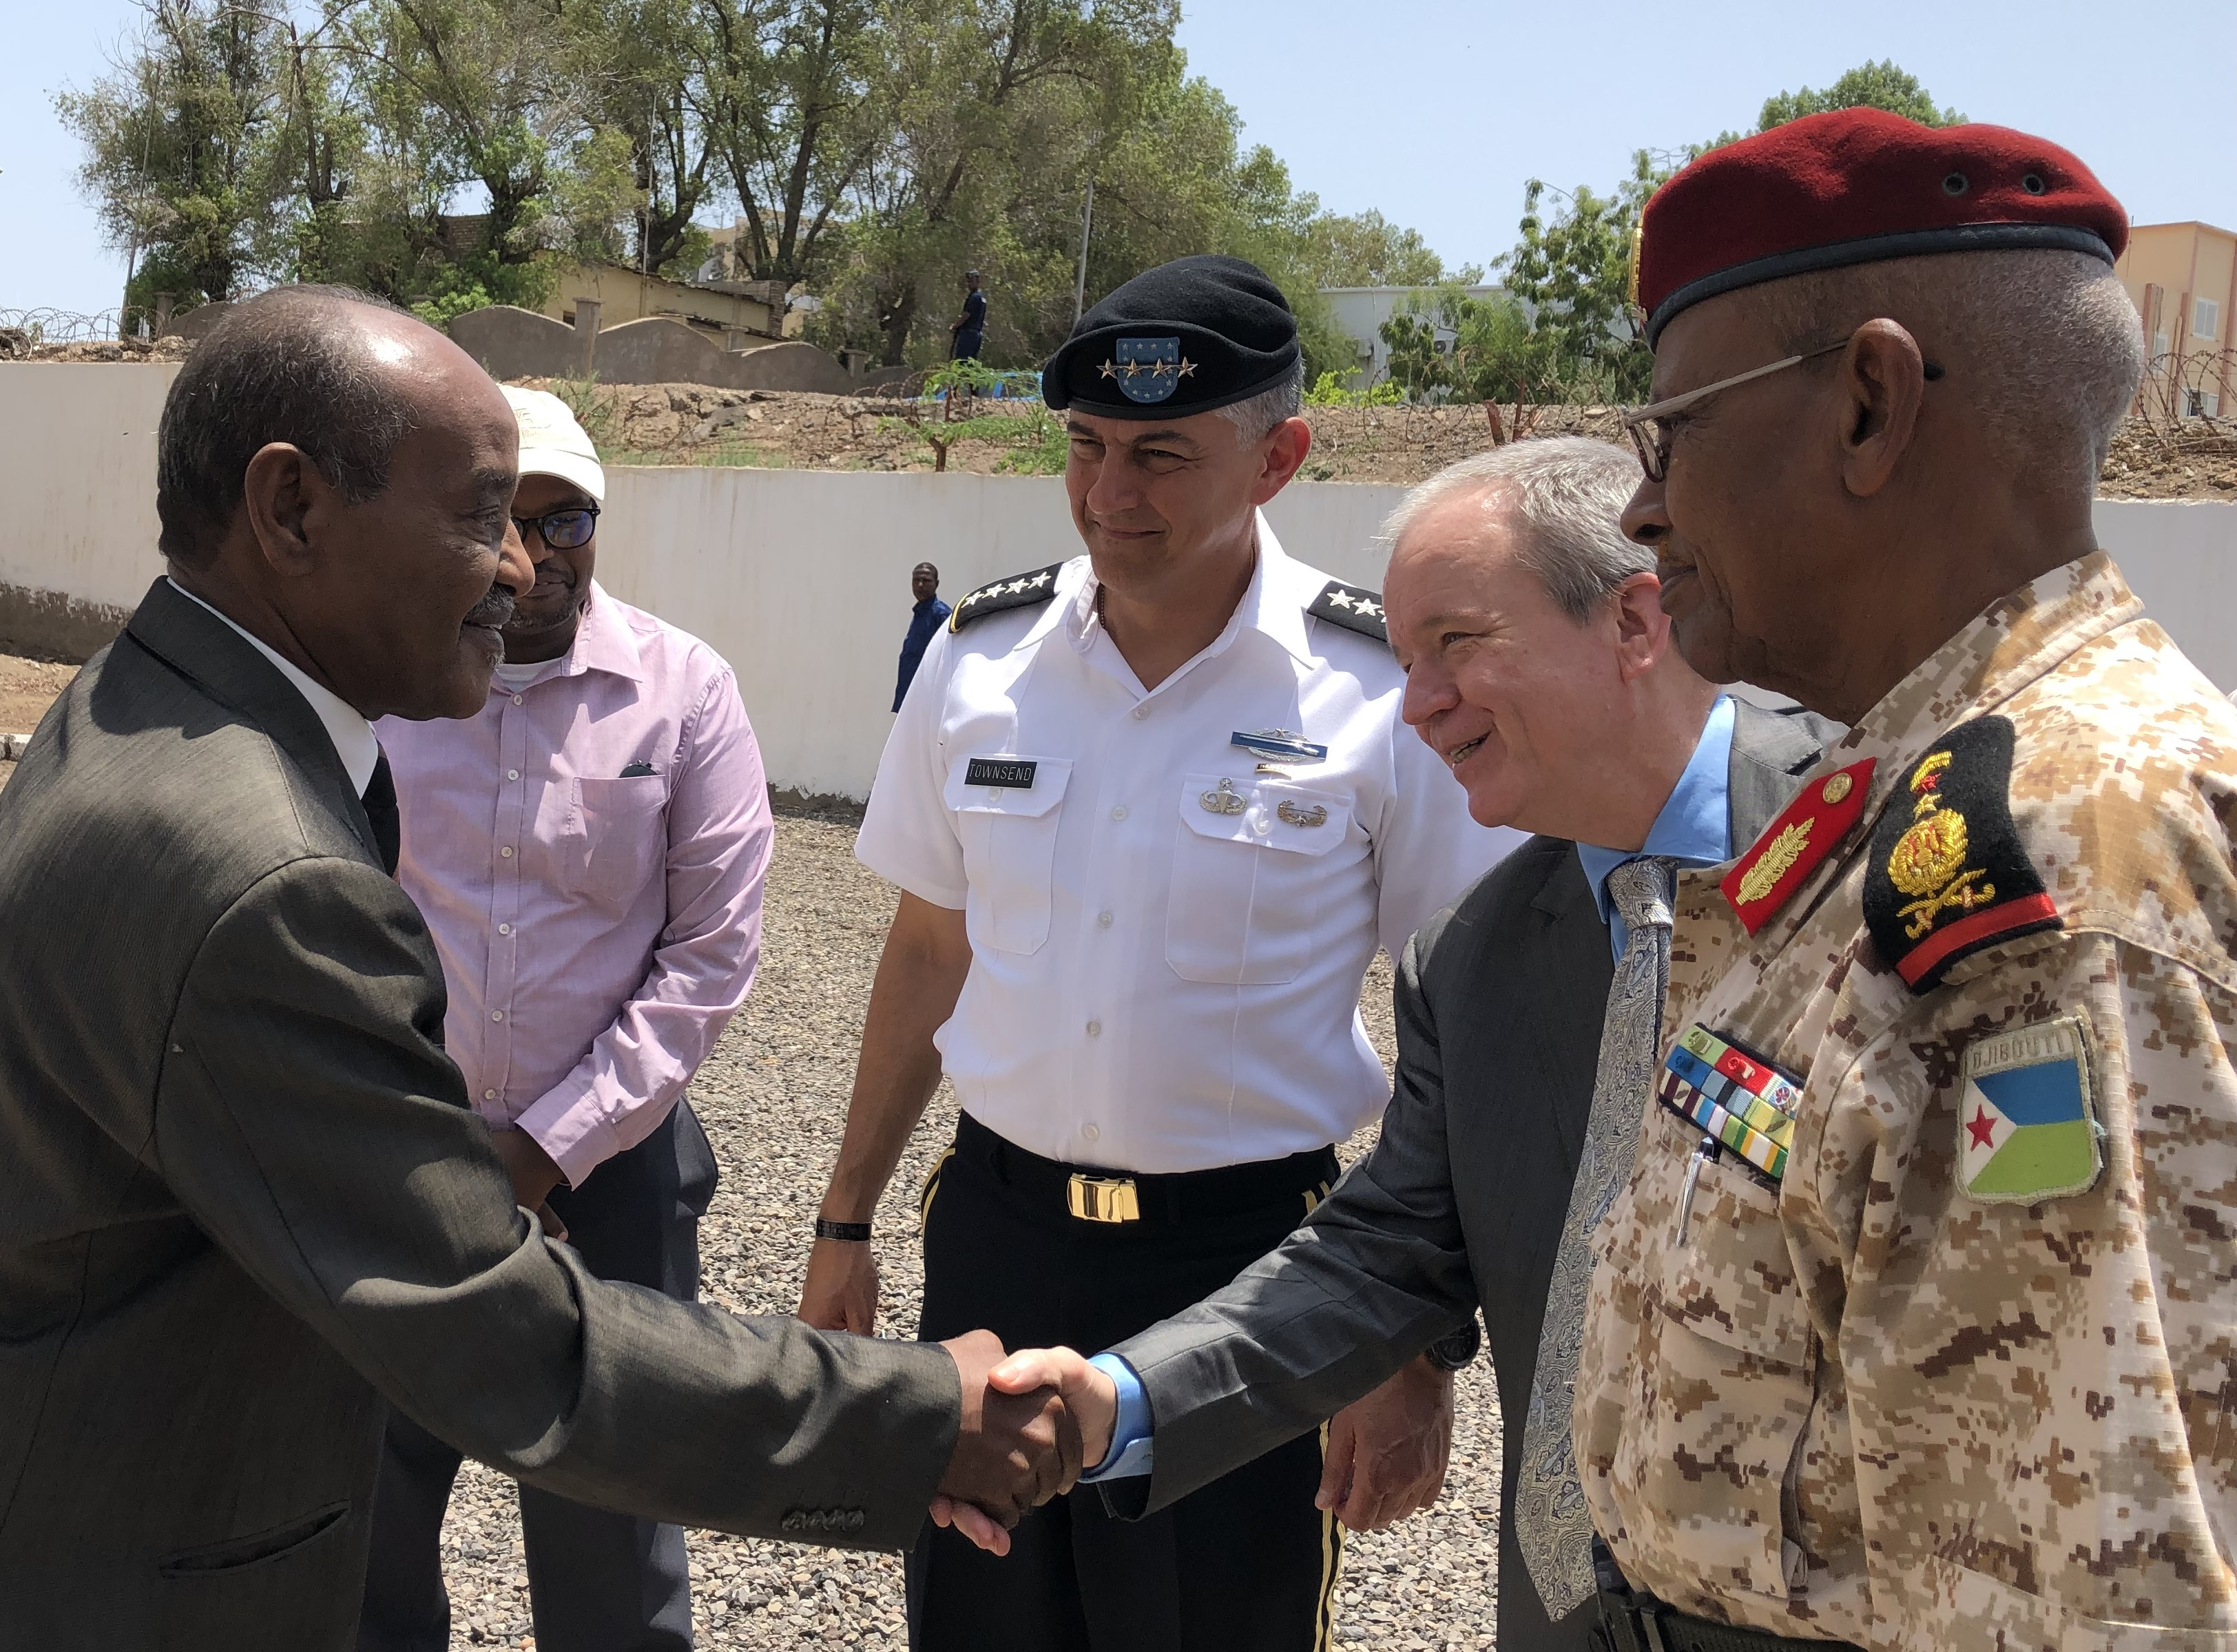 Amb. Larry André, U.S. ambassador to Djibouti, shakes hands with Hassan Omar Mohammed, Djiboutian minister of defense Aug. 8, 2019. U.S. Army Gen. Stephen Townsend visited Djibouti as part of his first visit to Africa since taking command of U.S. Africa Command July 26.